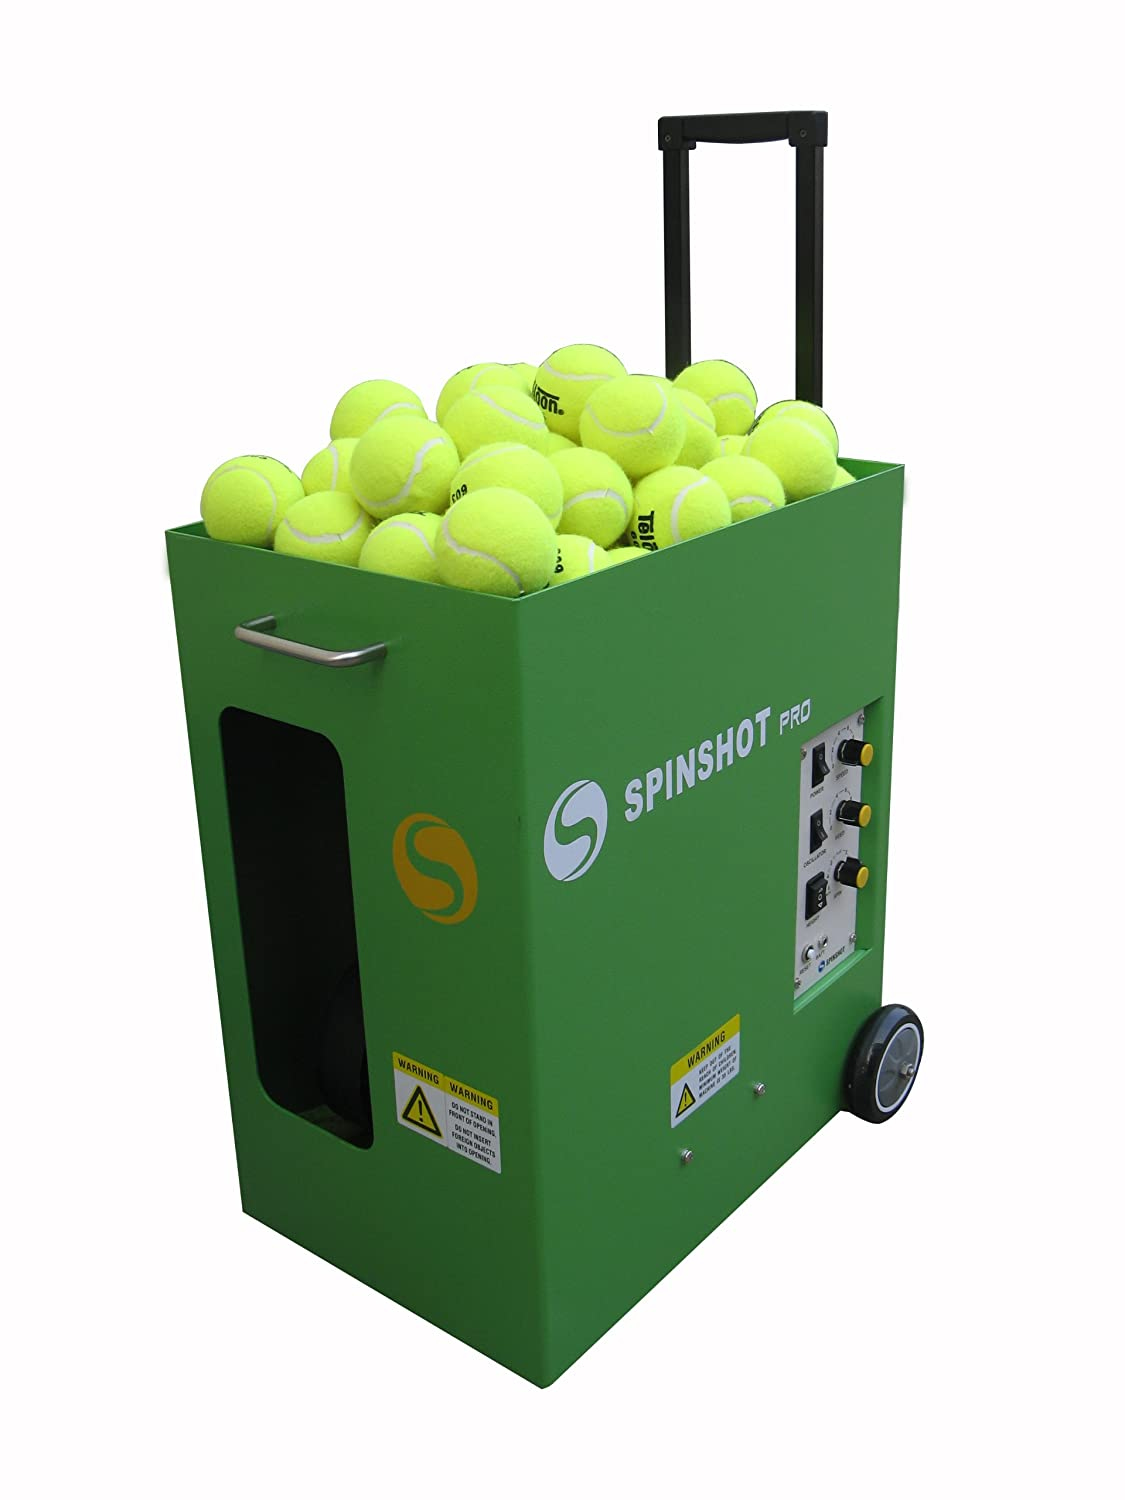 the best tennis machine